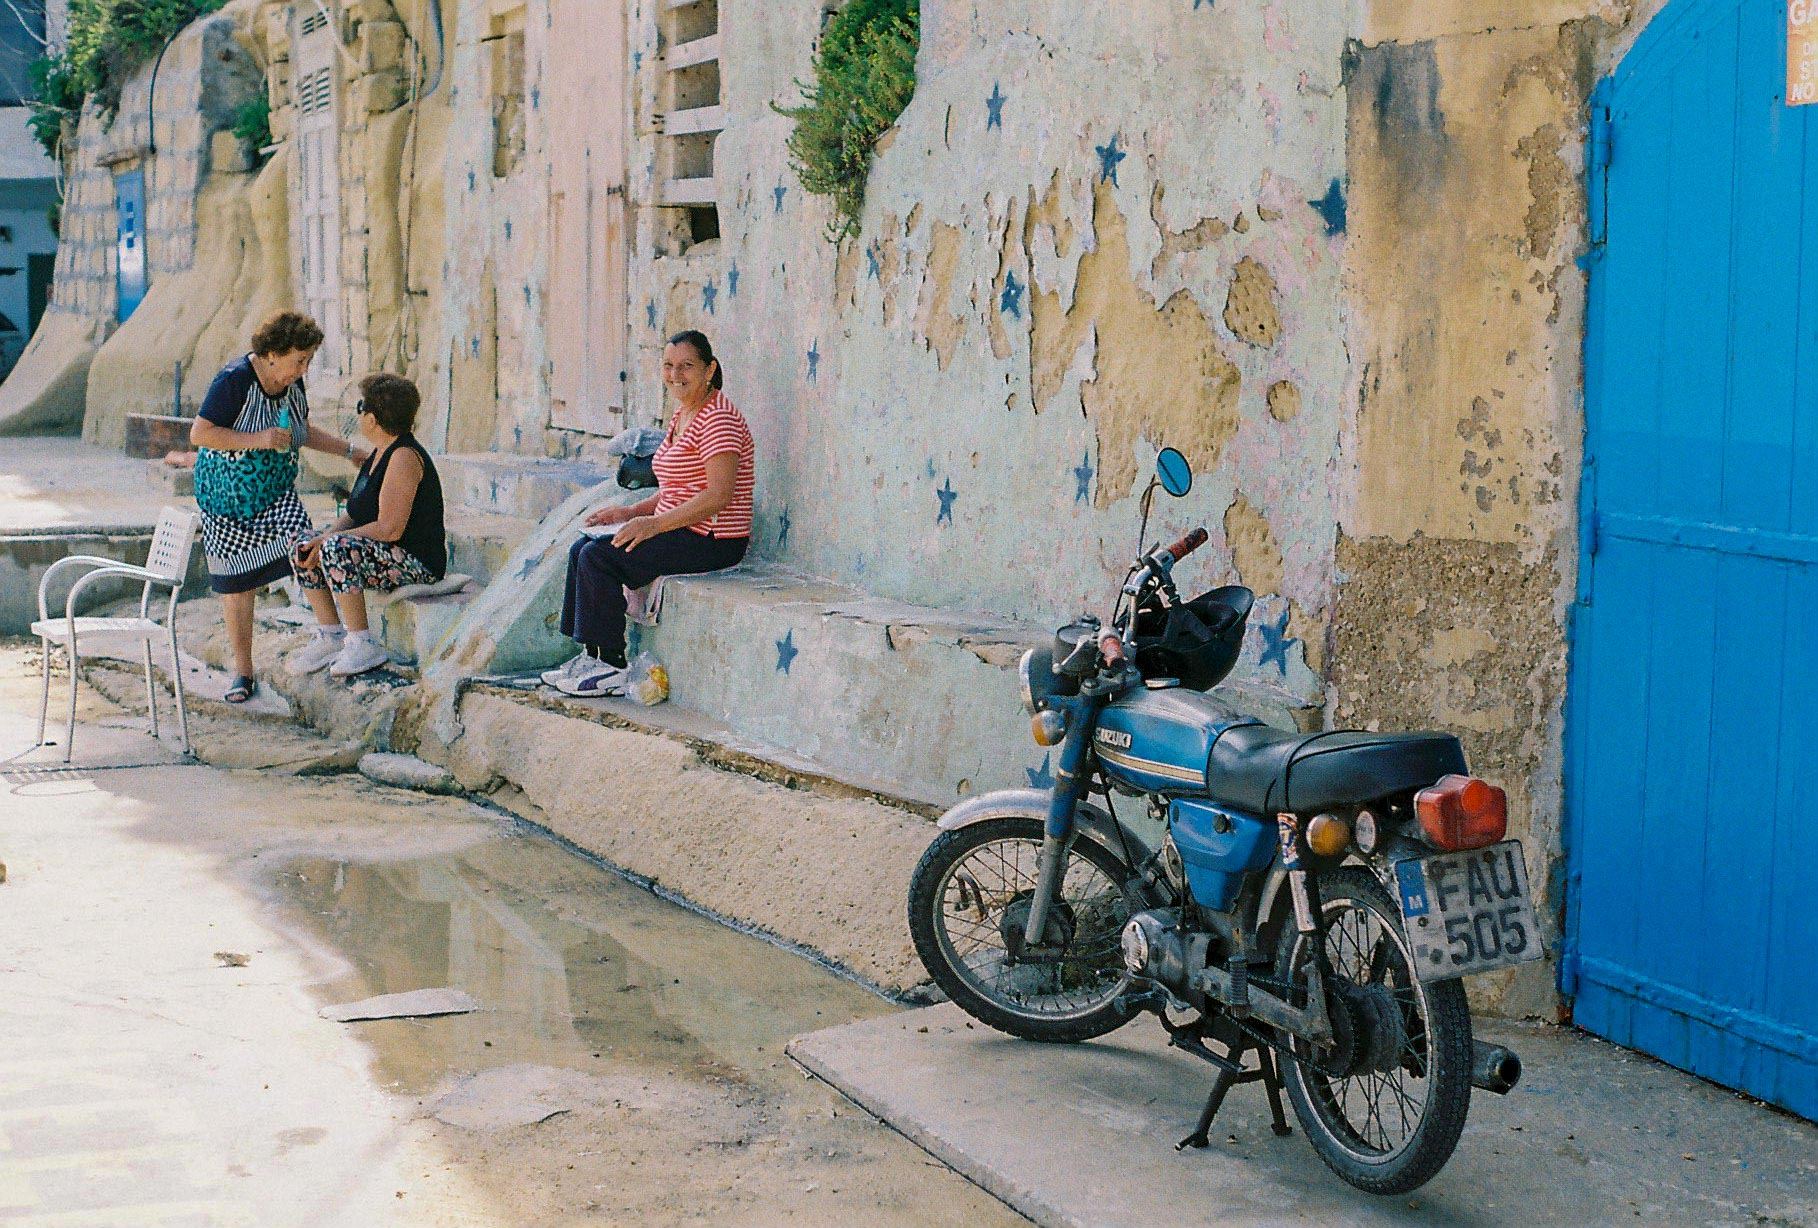 Maltese morning… they started playing cards soon after!